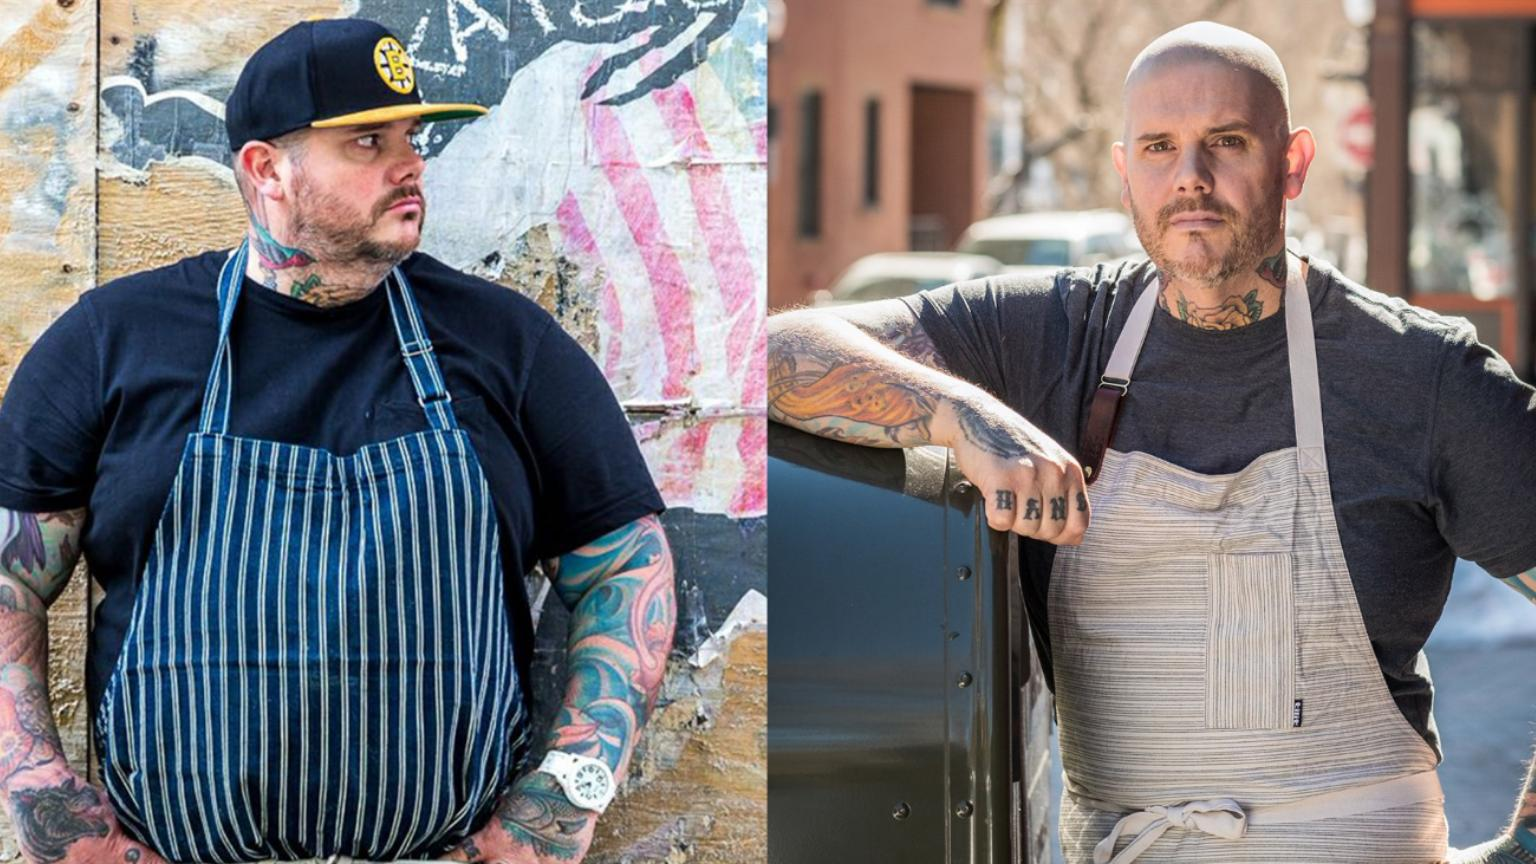 A Chef Lost 200 Pounds by Making This Delicious Recipe - Cooking Light